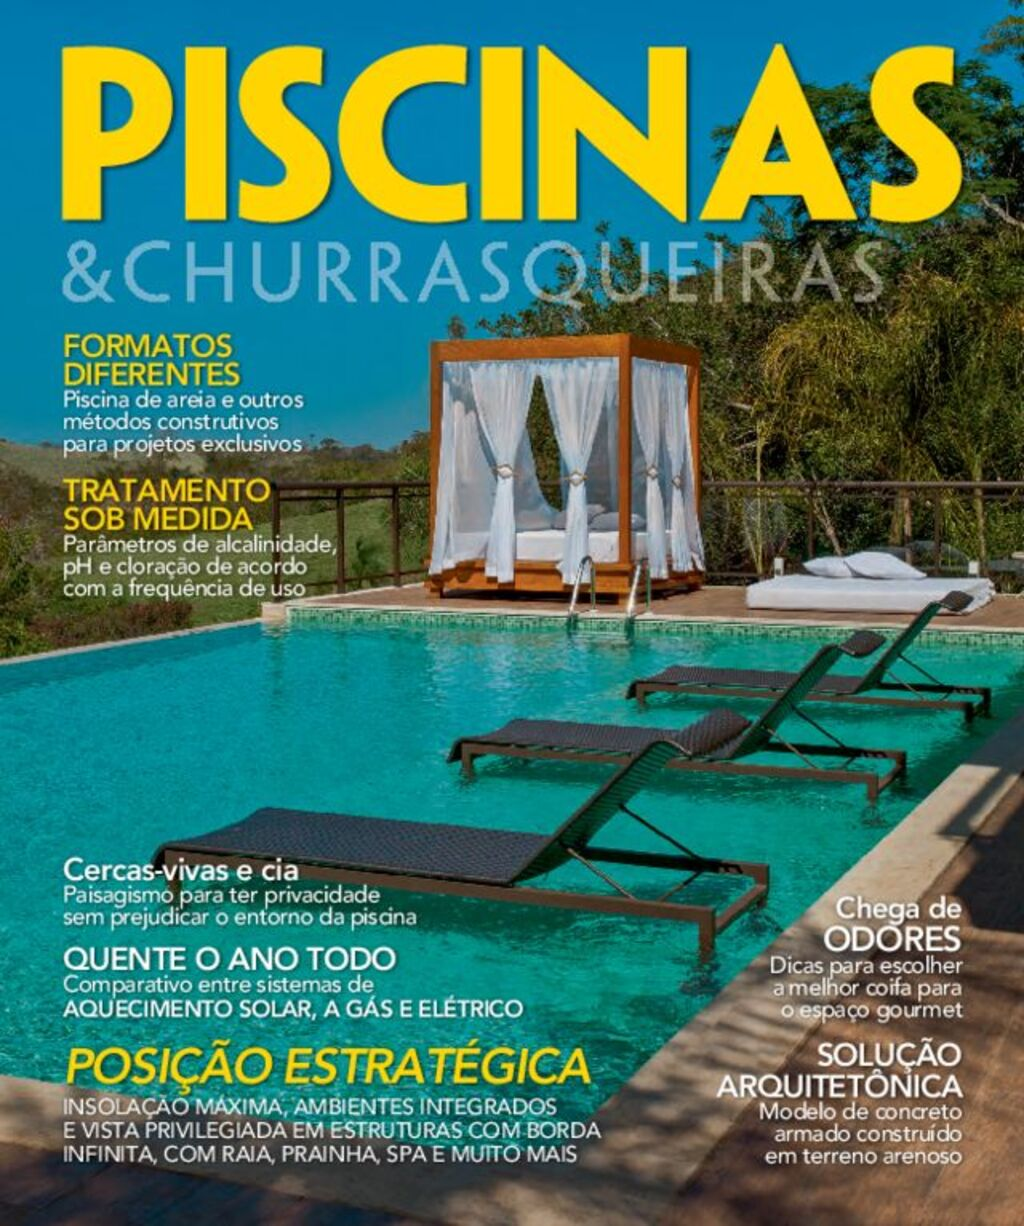 Piscina & Churrasqueiras